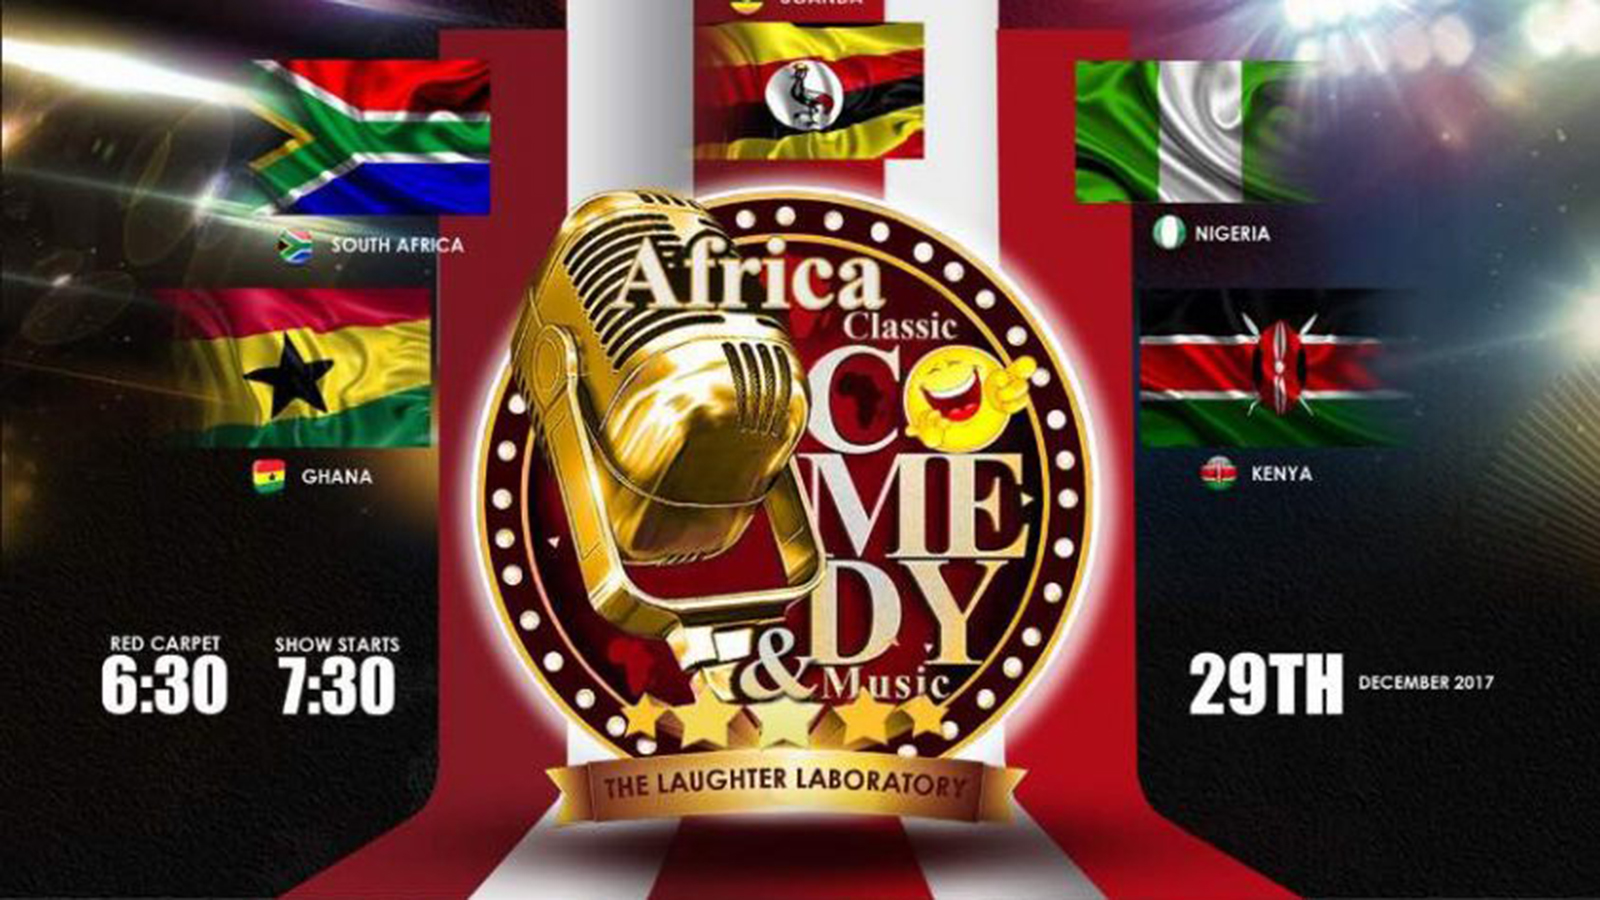 African Classic Comedy and Music